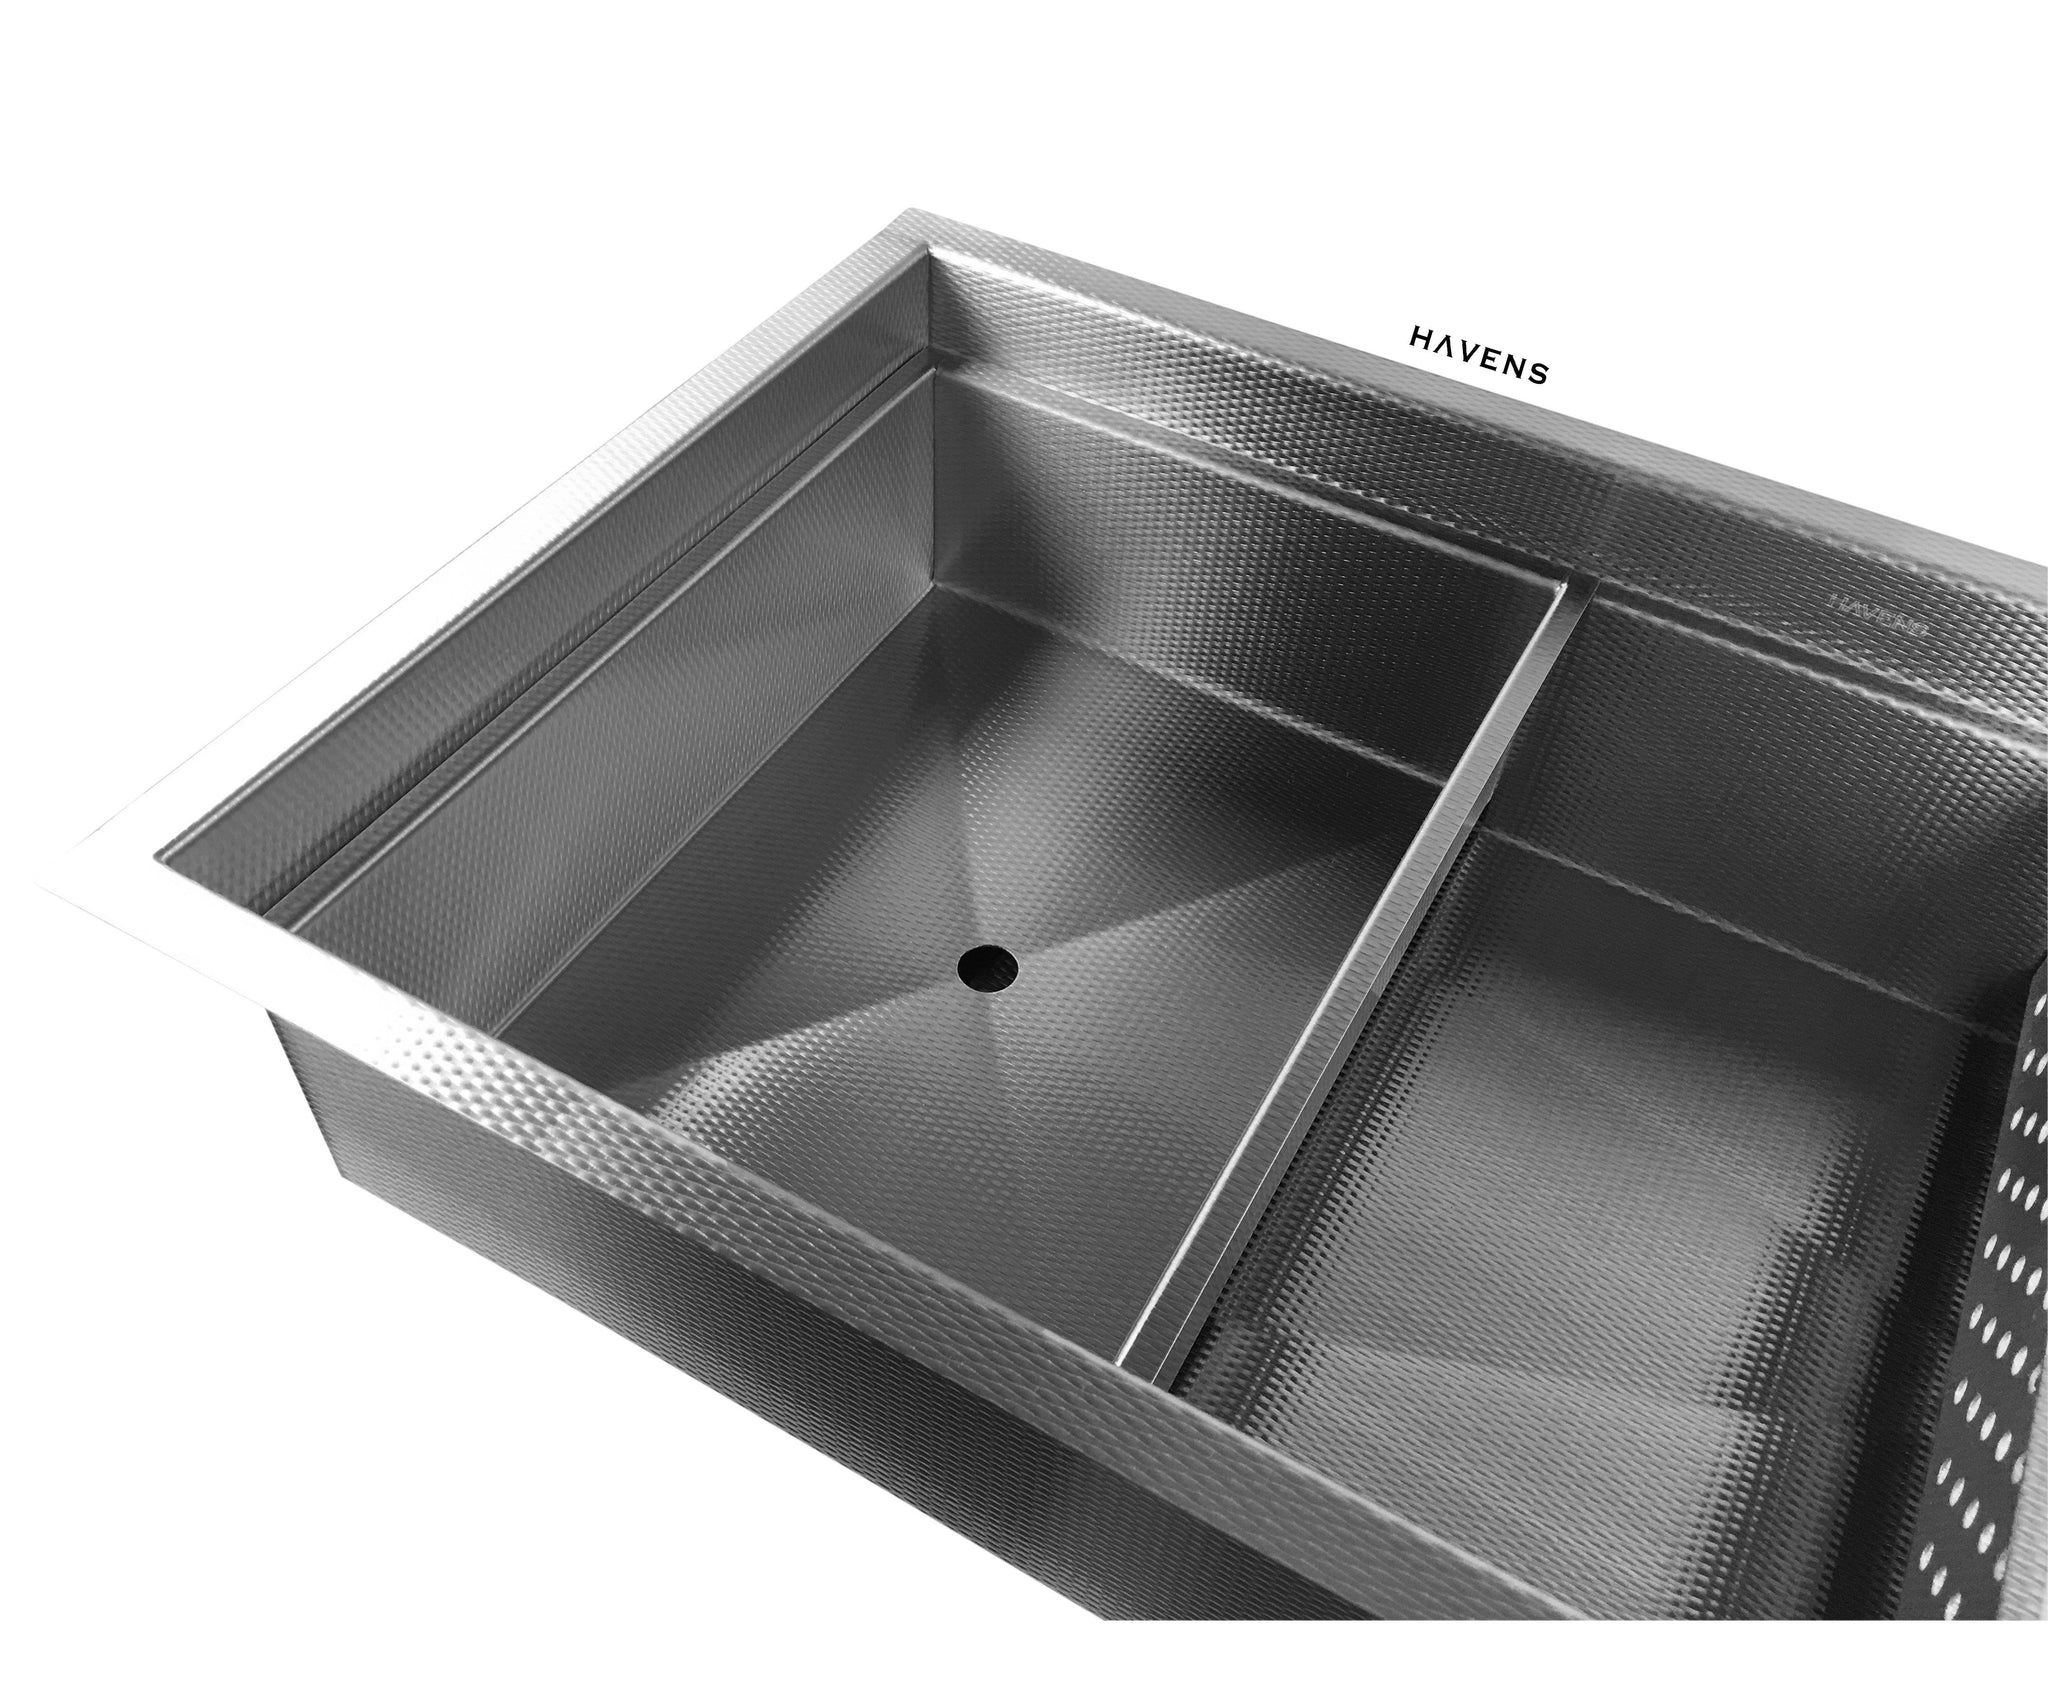 Accessory - Stainless Steel Sink Drop-In Bowl